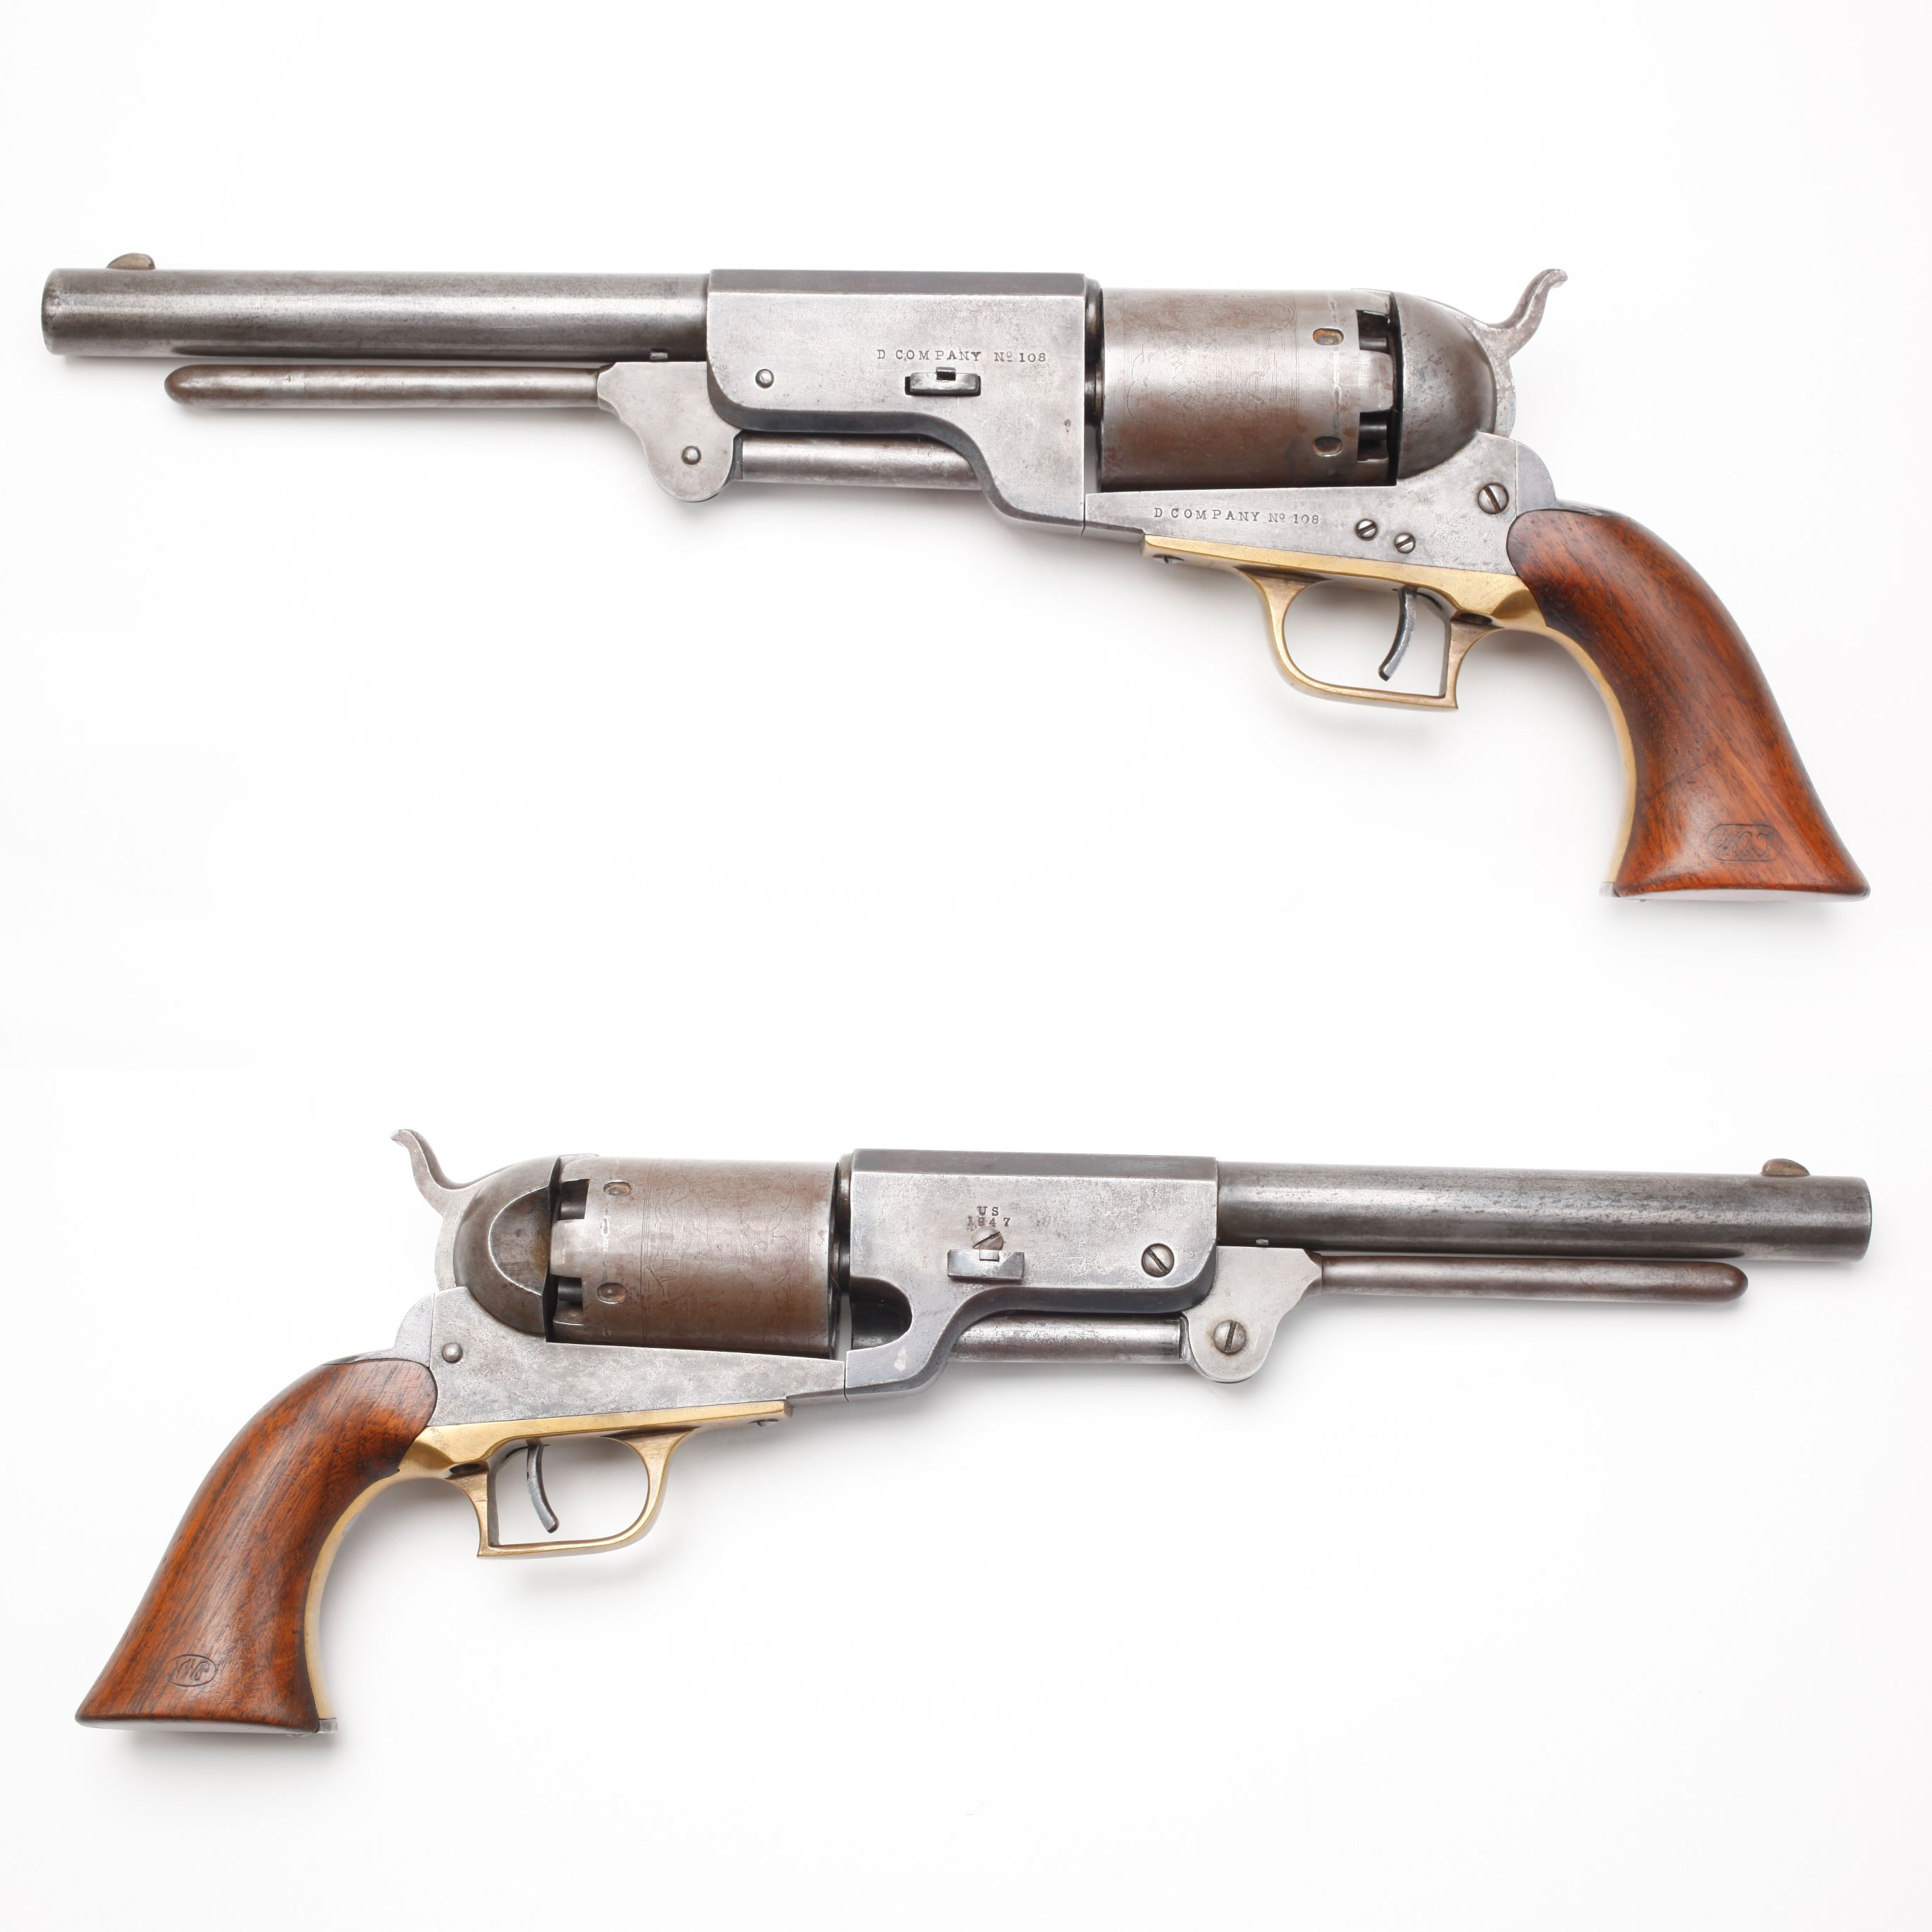 The Heavy Holy Grail of Colt Revolvers- The rare Colt Walker